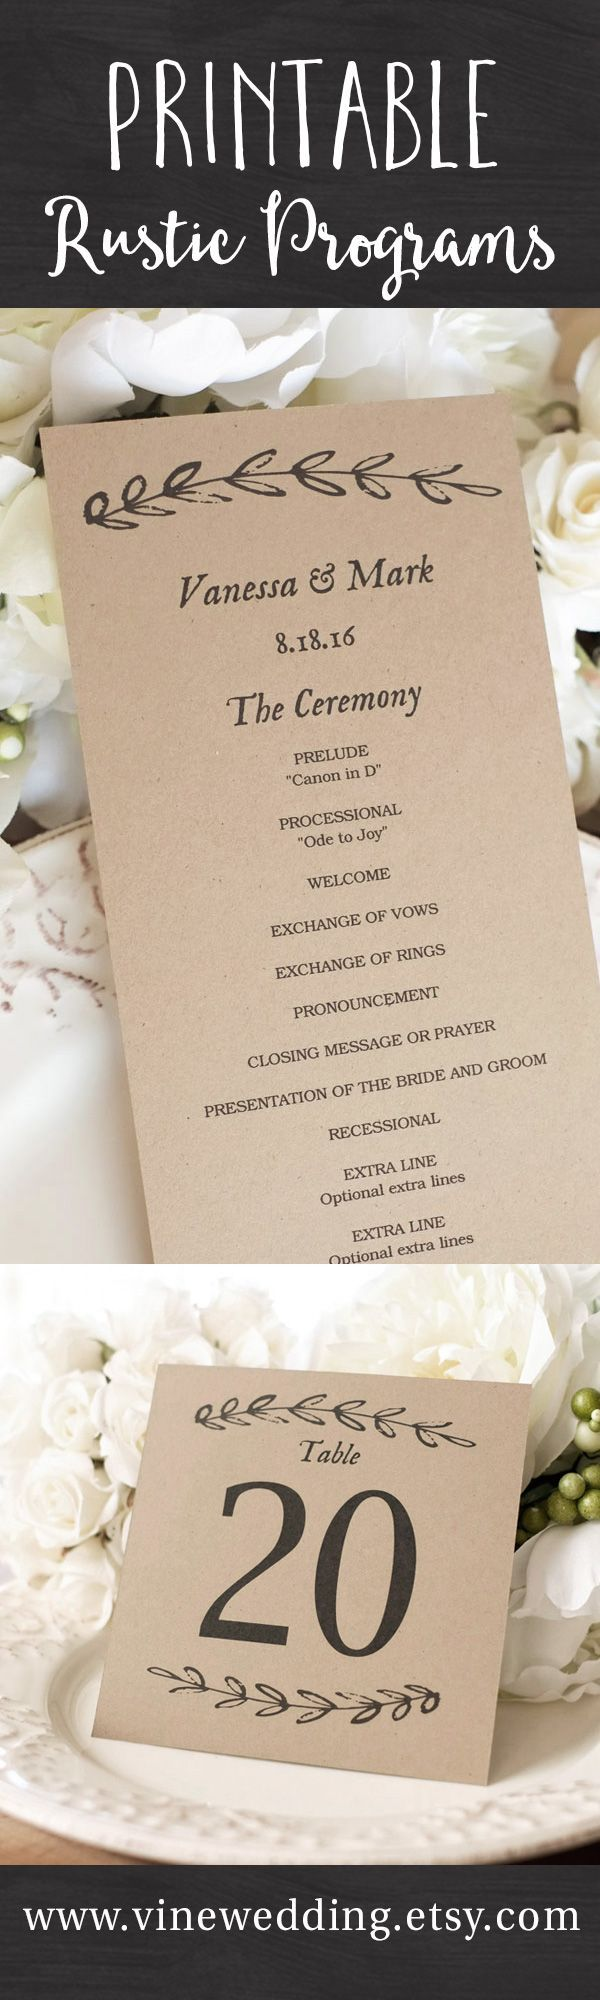 Beautiful rustic wedding programs. Editable instant download templates you can print as many as you need.  #wedding #programs #printable